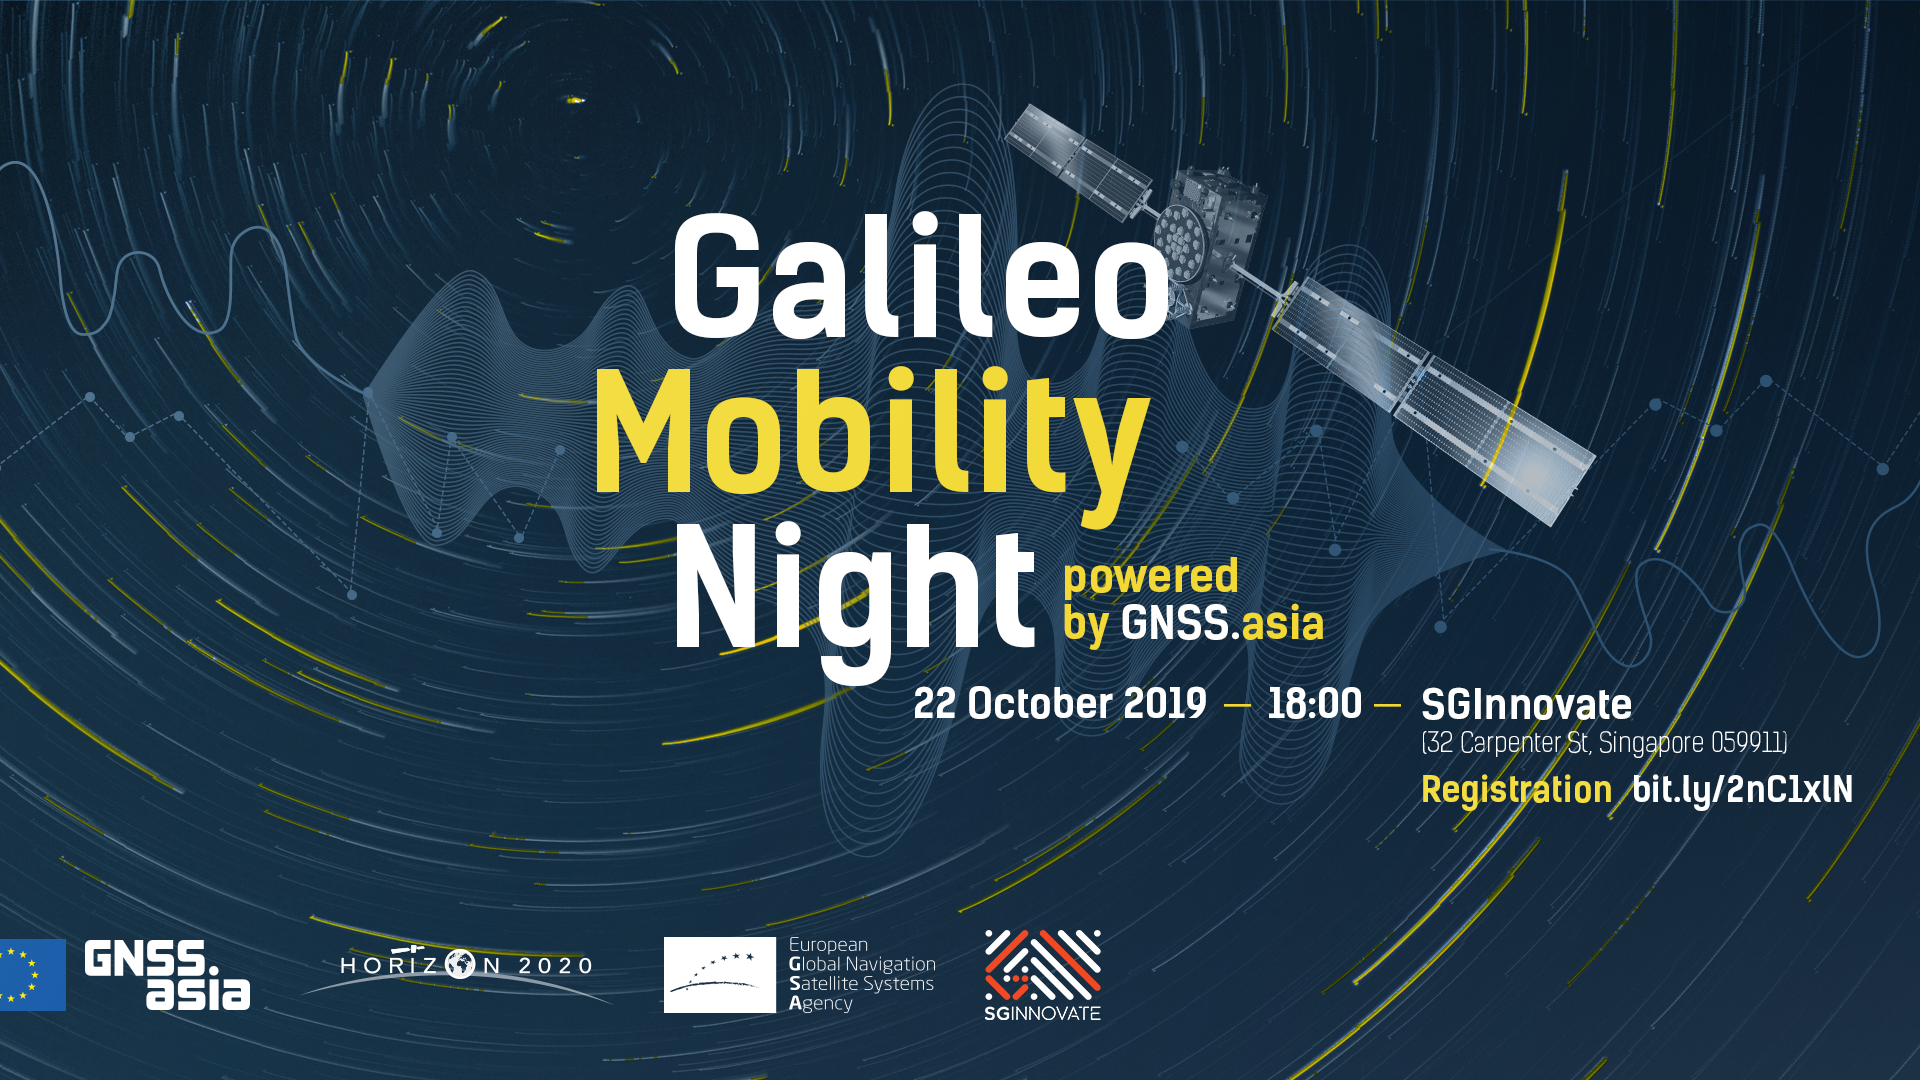 Galileo Mobility Night in Singapore